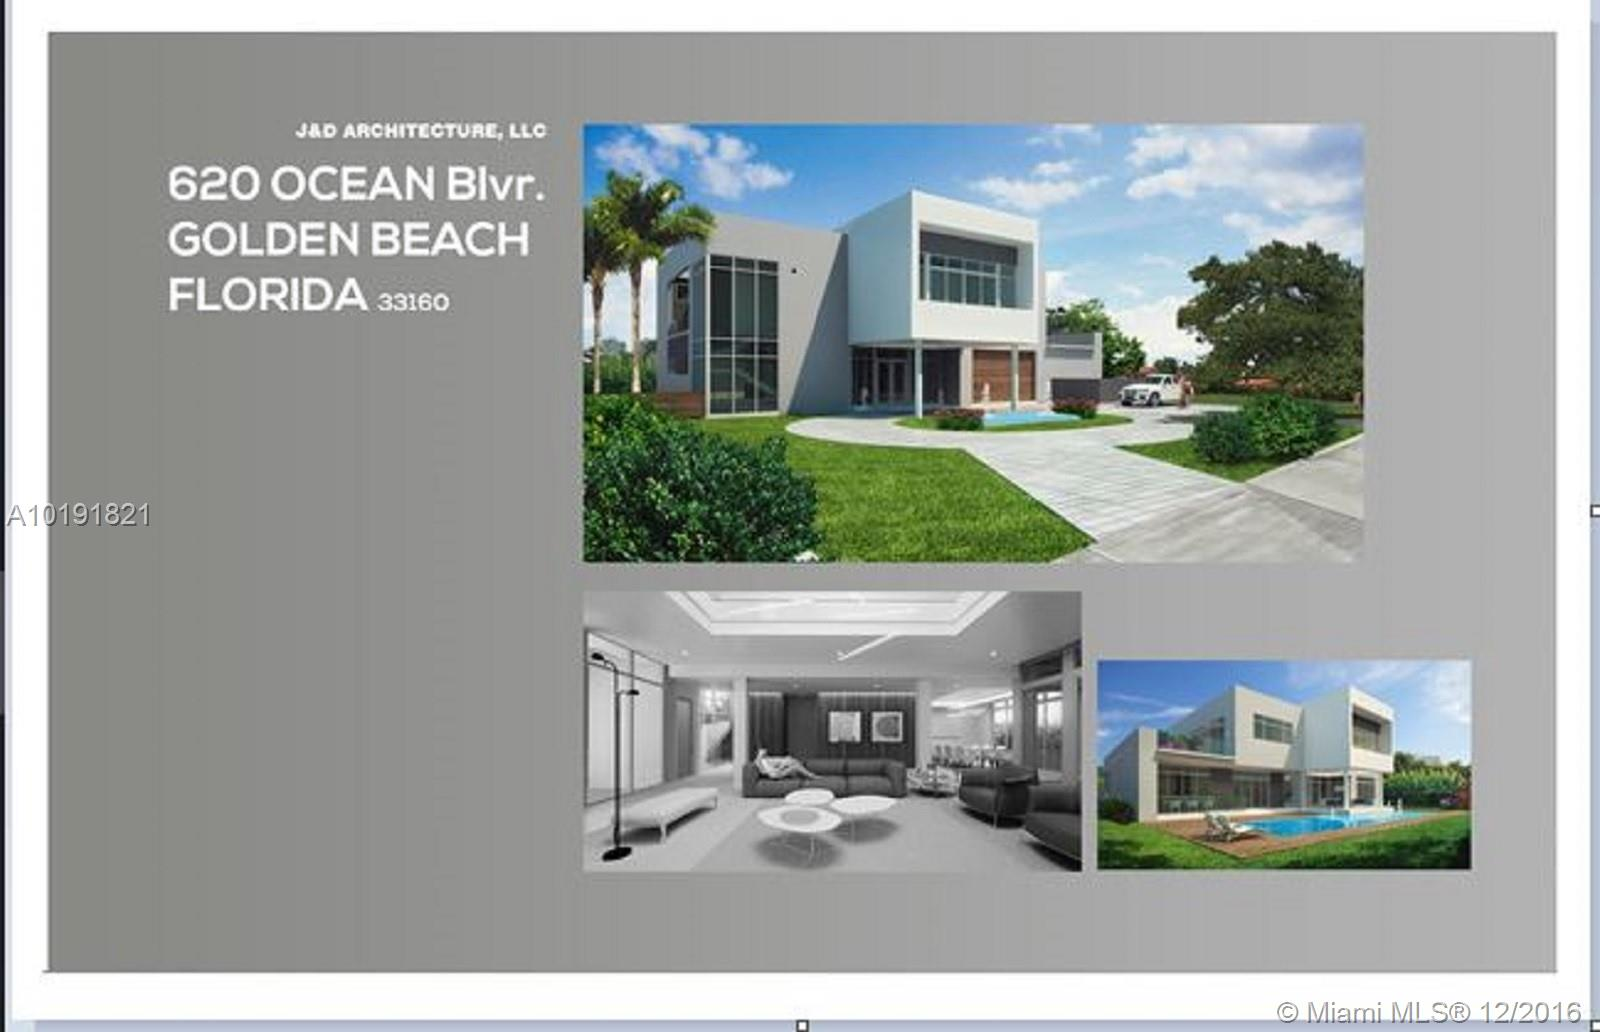 "Stunning Modern ""Over the Top"". New Construction. Designer finishes with the latest modern appliances and exquisite finishes. Large lot across from Golden Beach's oceanfront mansions. Expected completion 2018."